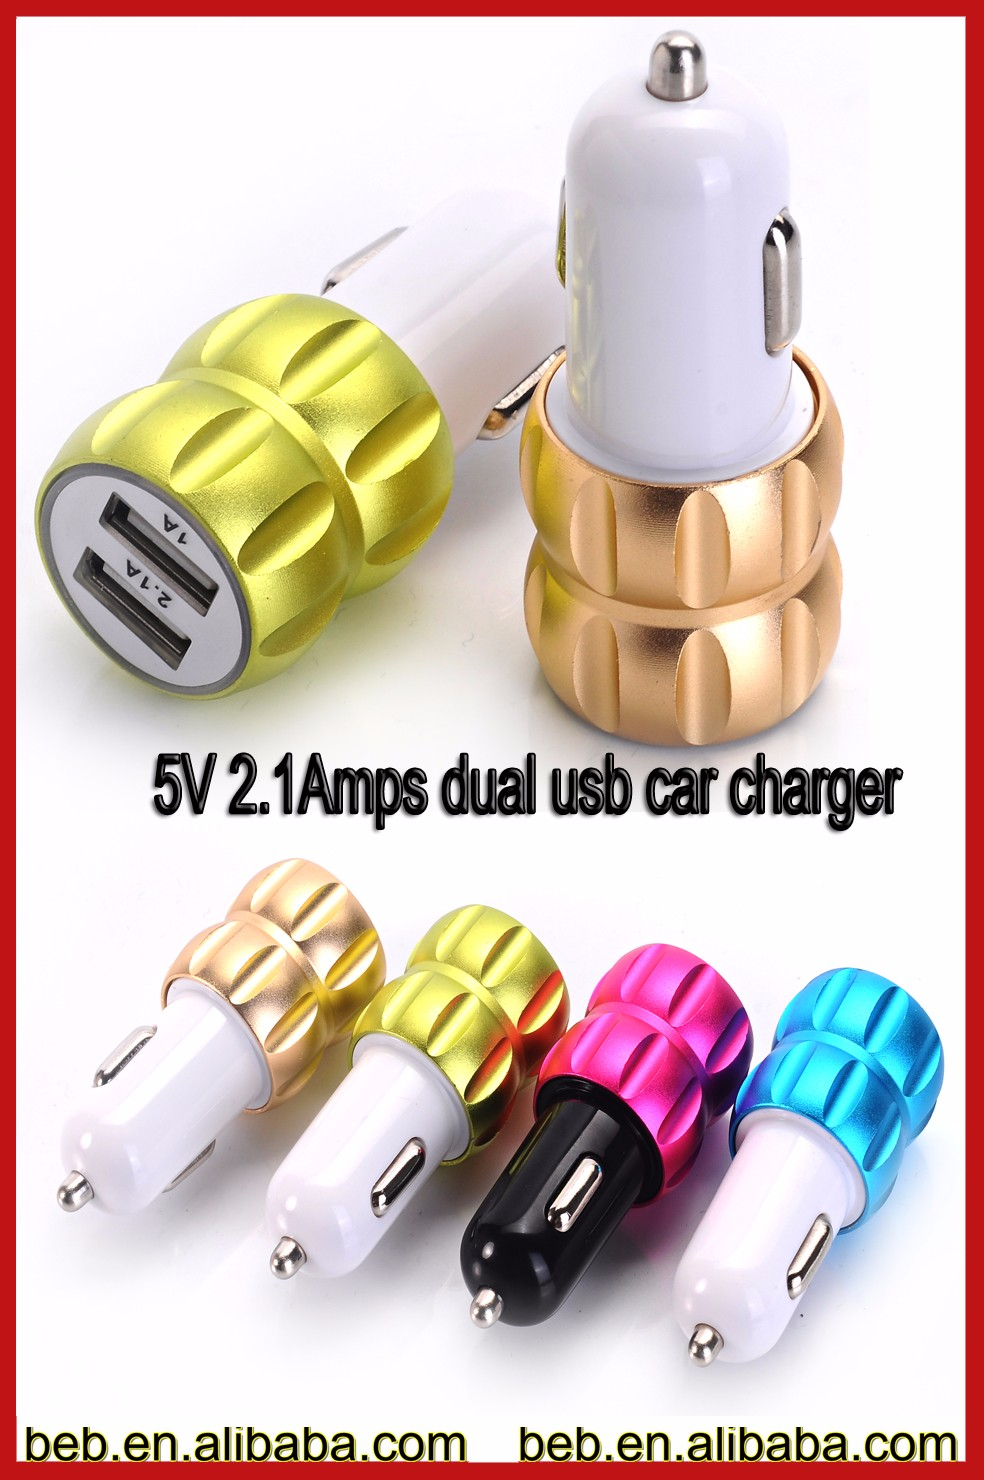 Wholesale micro usb car charger for iphone 6s iphone 5s micro car charger